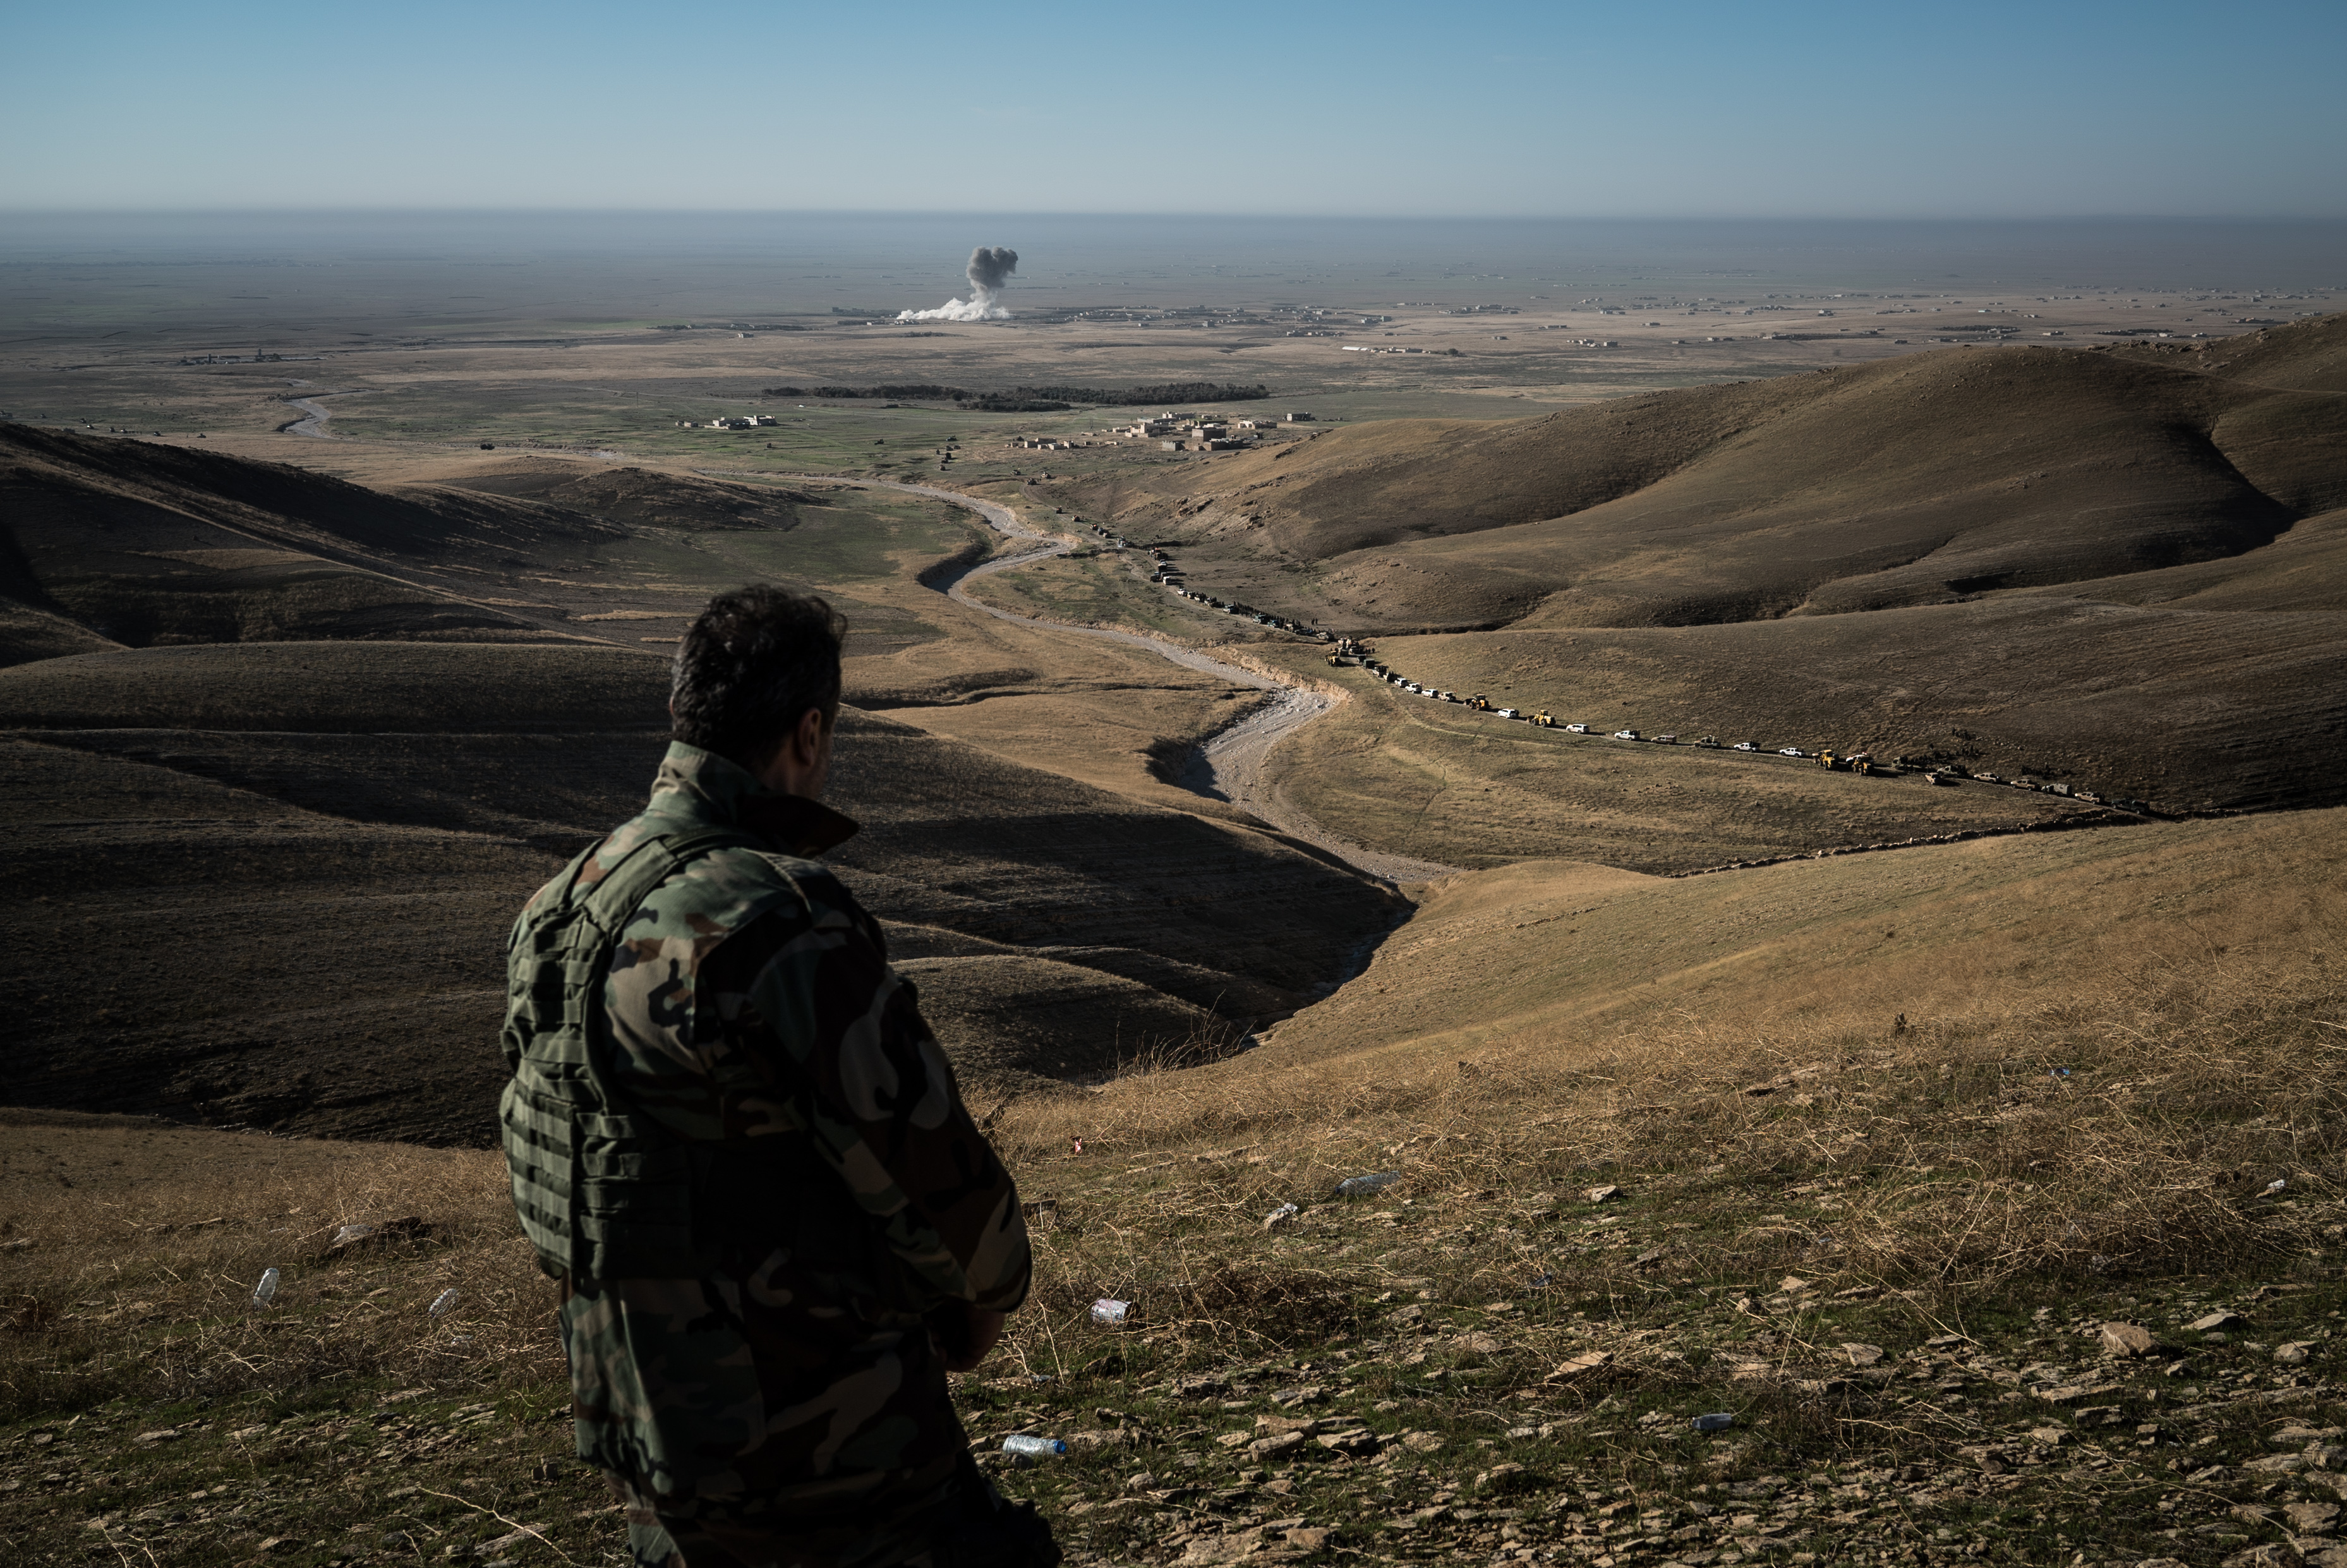 A member of a Kurdish special forces regiment watches from a hilltop as US-led coalition airstrike targets an ISIS position in Sinjar on Nov. 12, 2015.